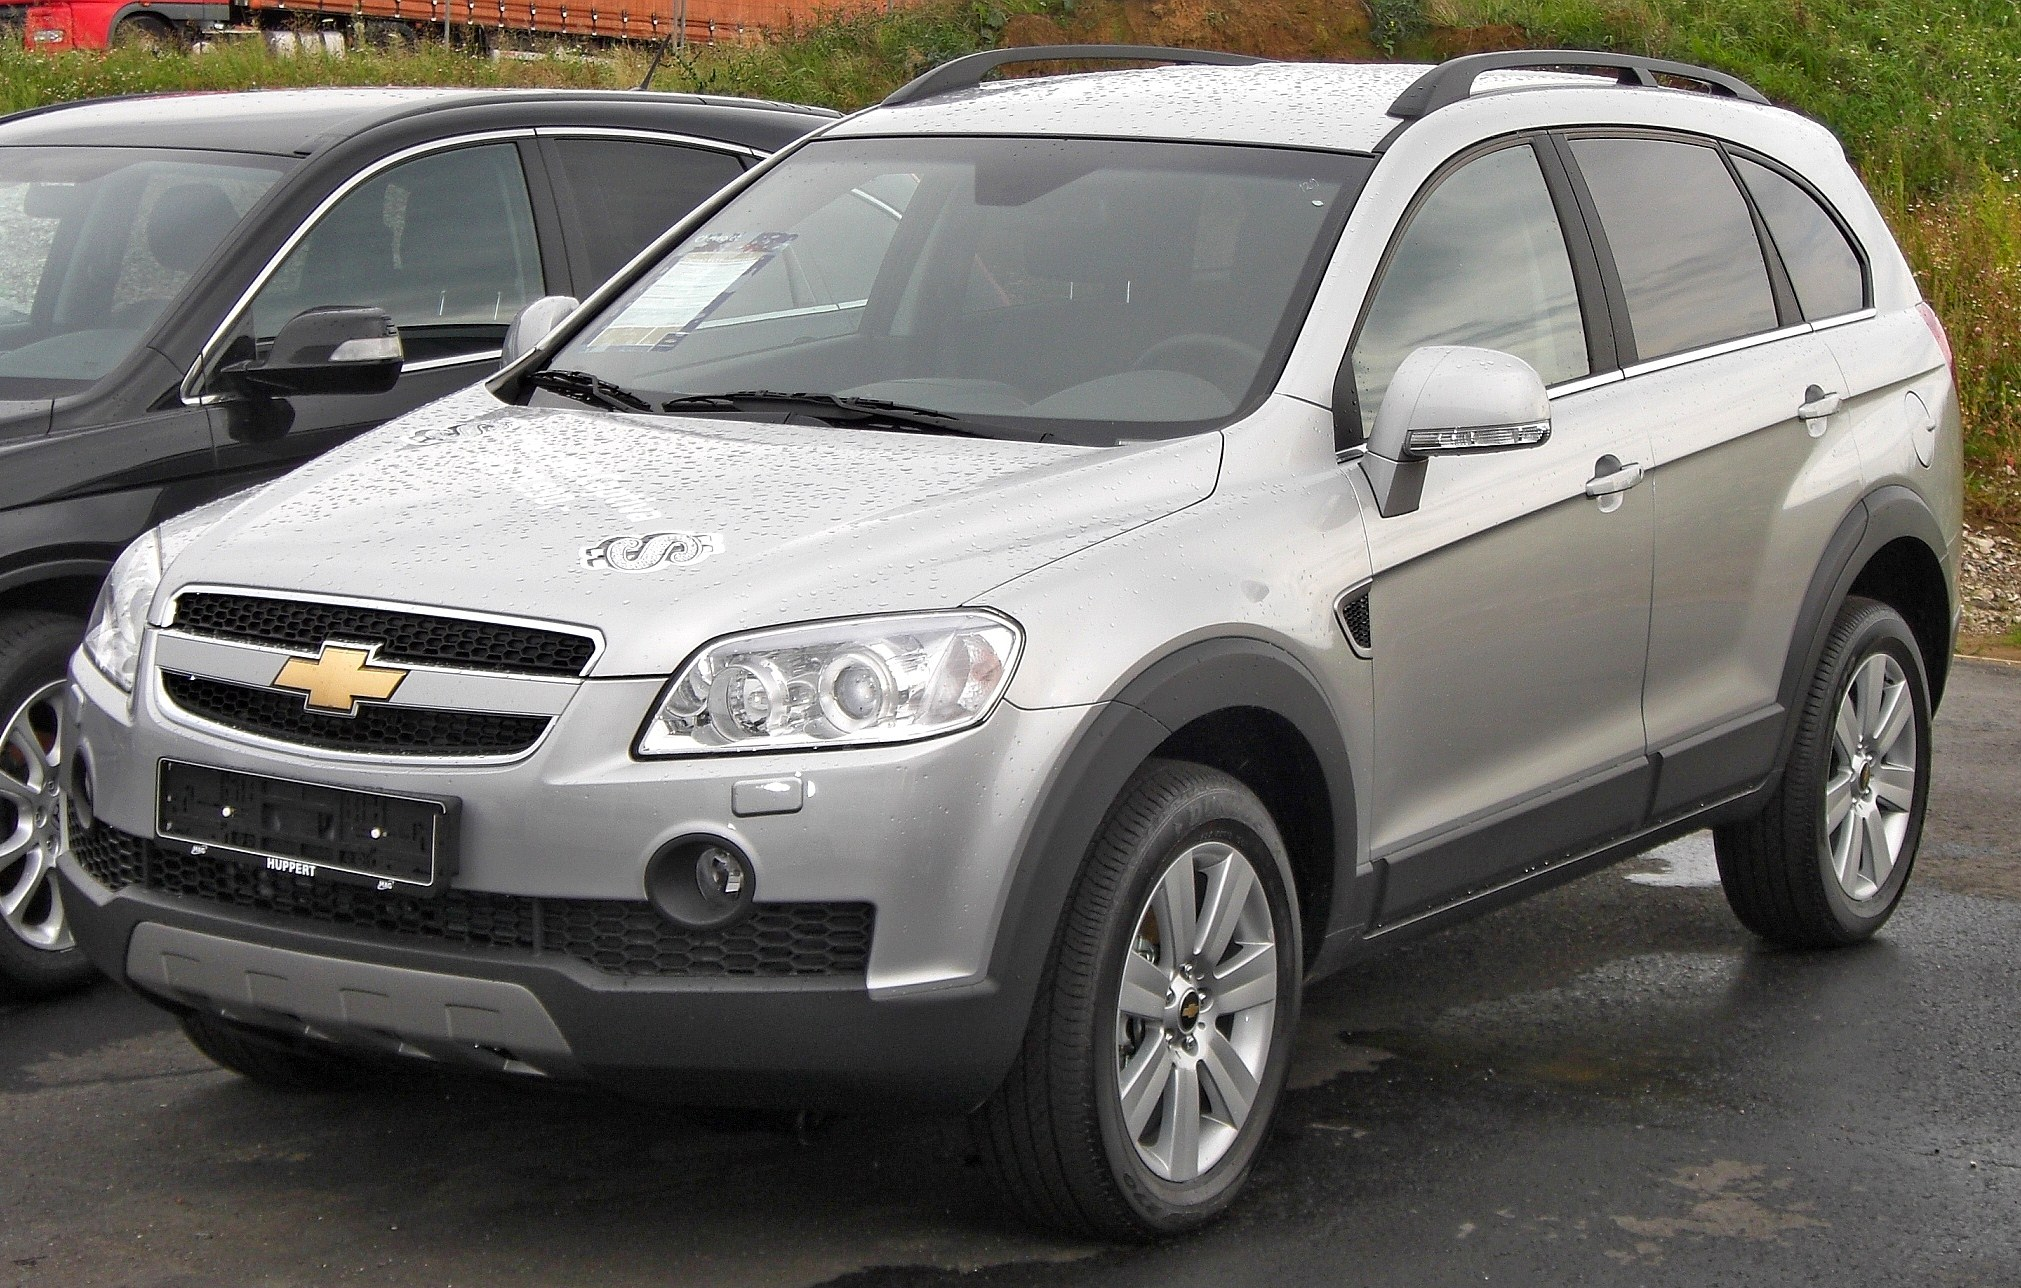 file chevrolet captiva front jpg wikipedia. Black Bedroom Furniture Sets. Home Design Ideas